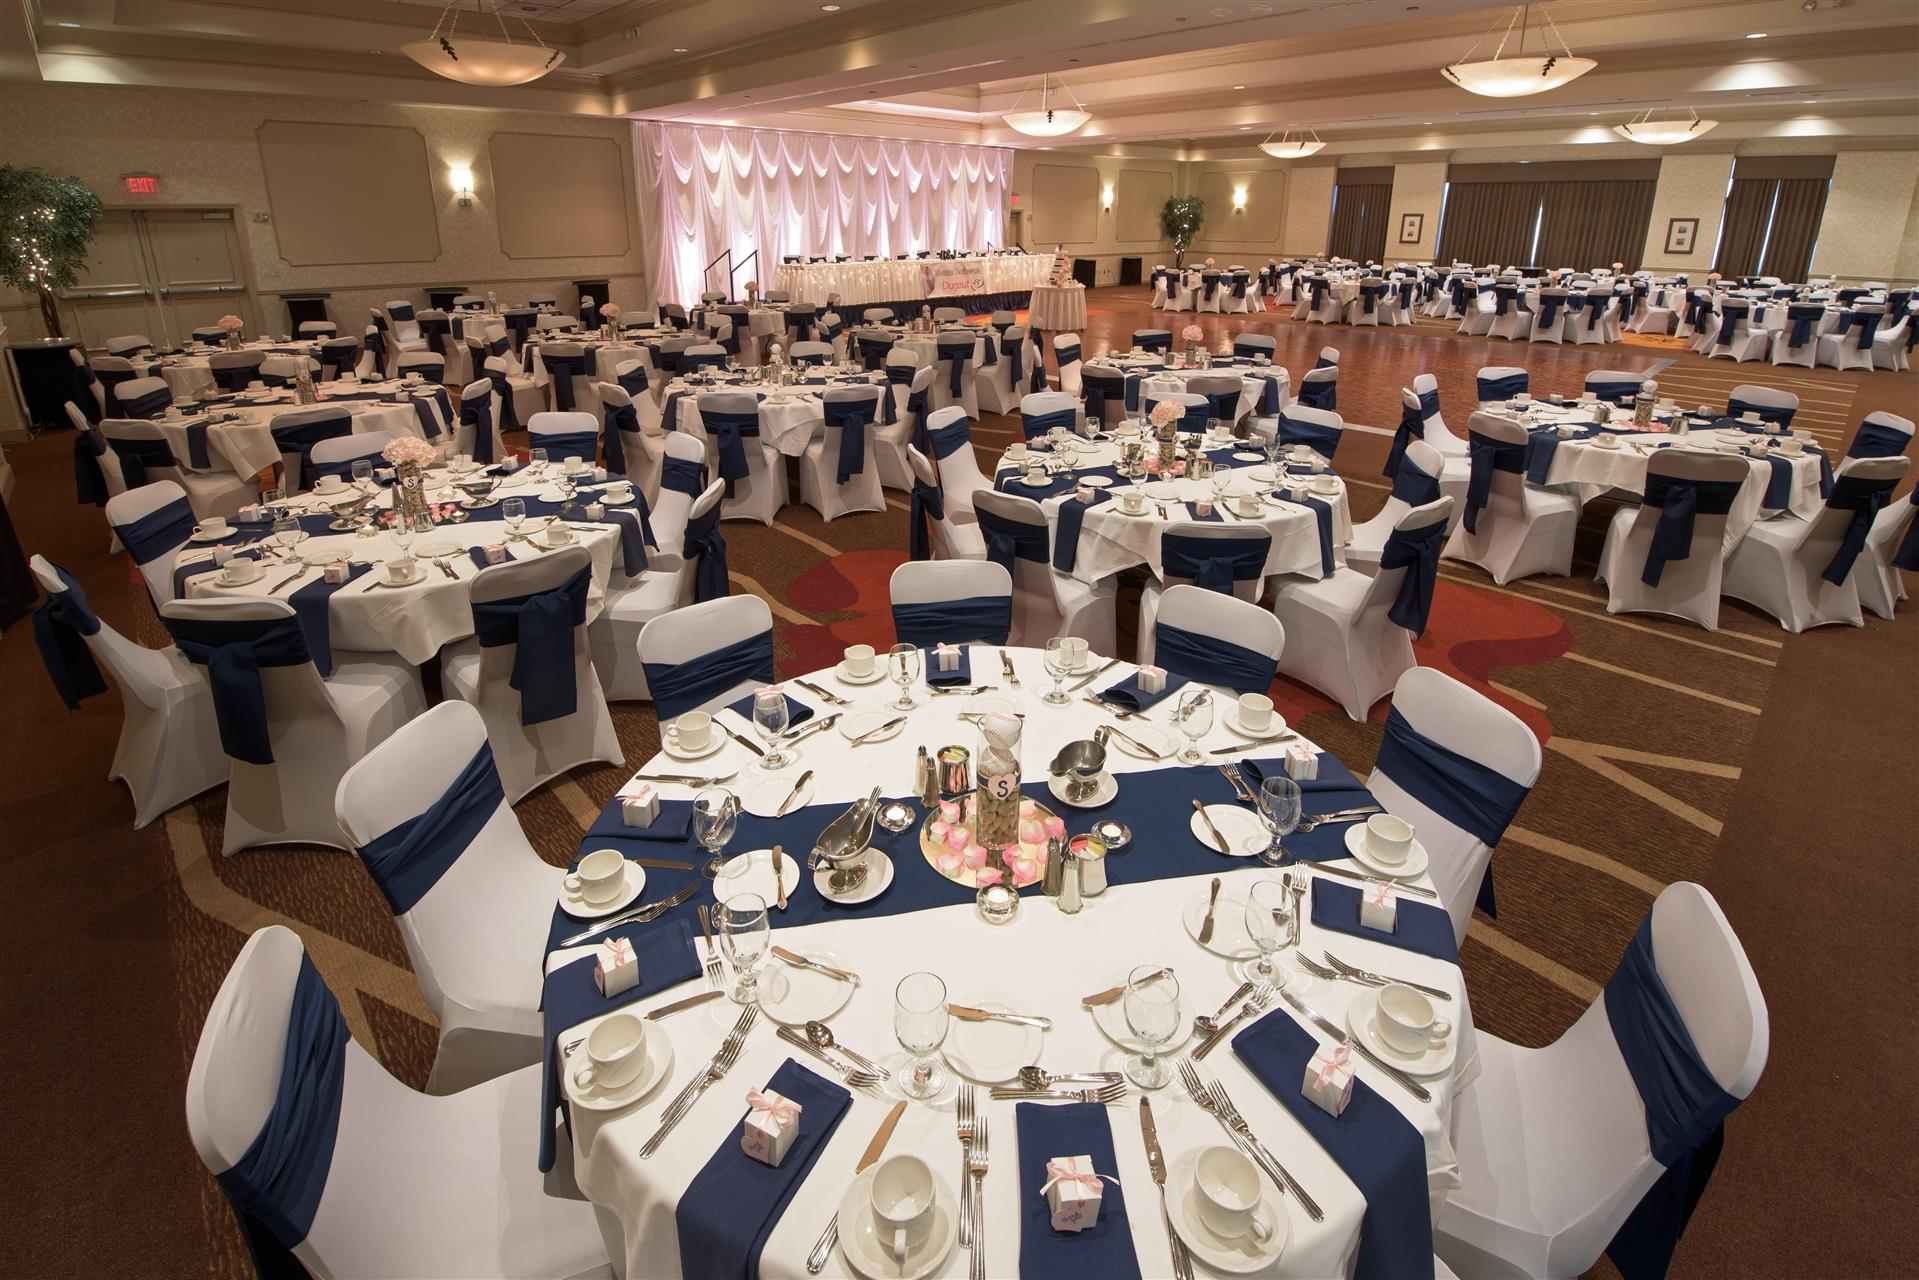 Meetings And Events At Hilton Garden Inn Cleveland Twinsburg